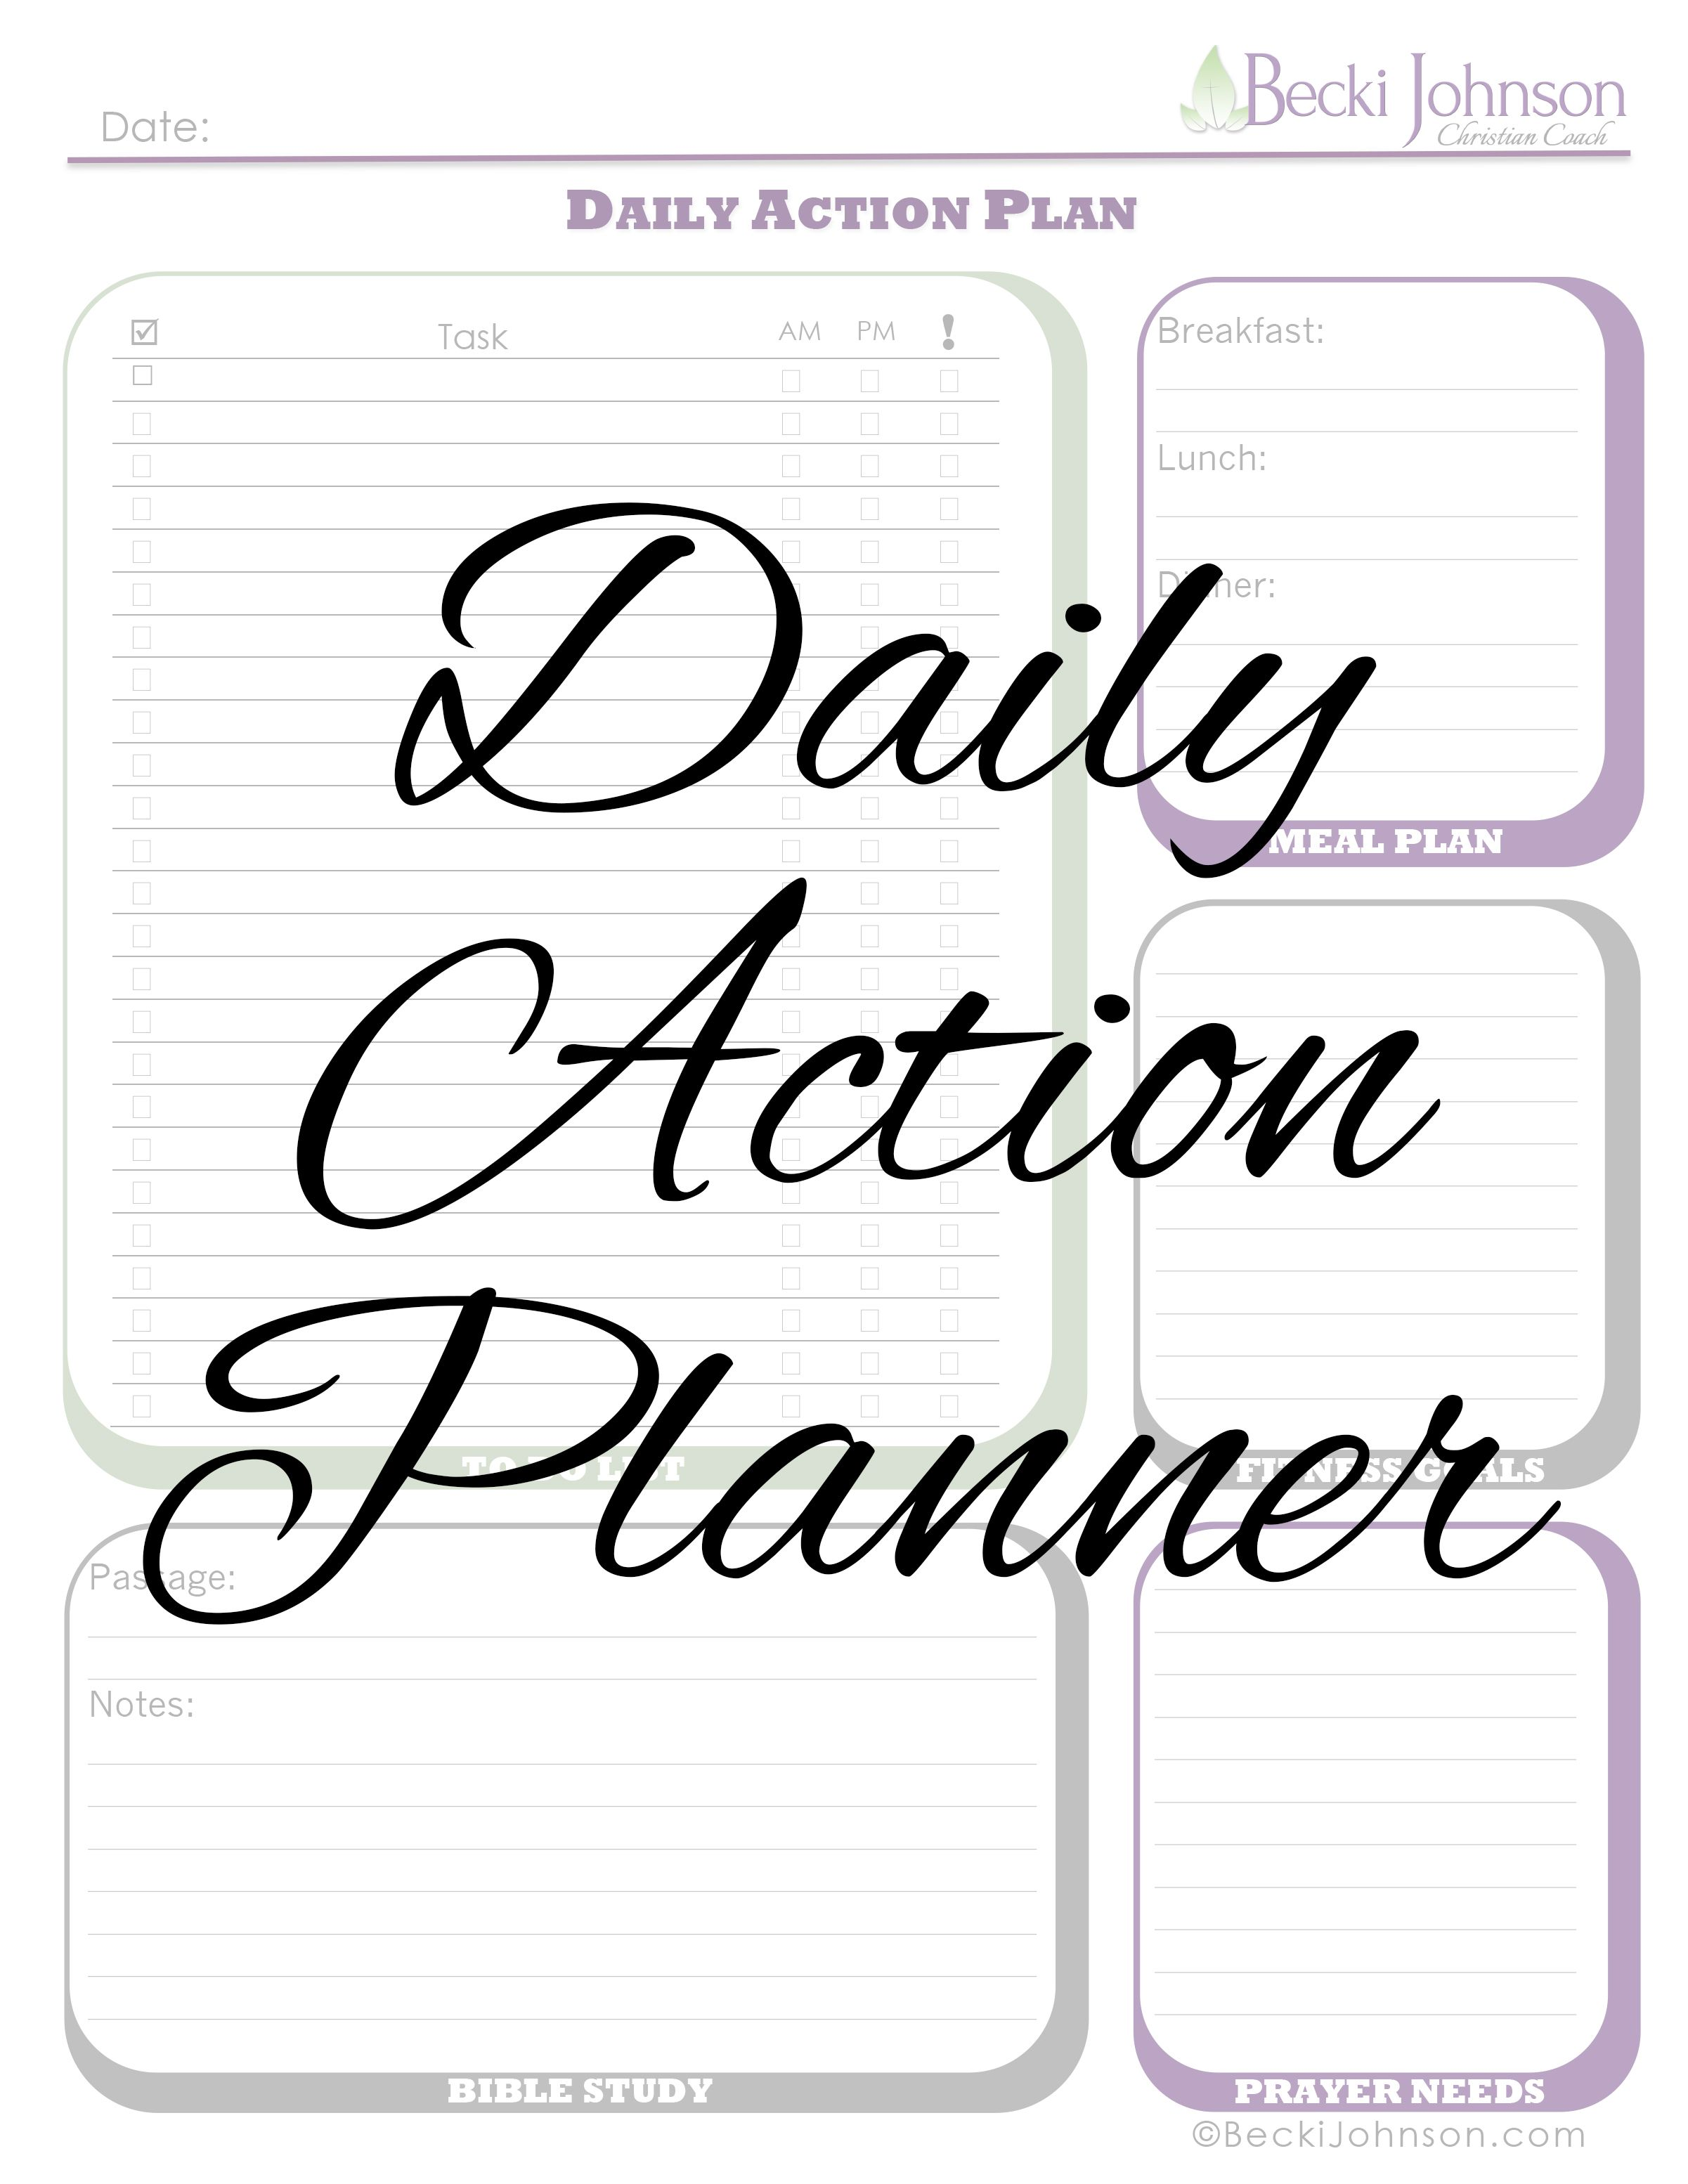 Free Download Daily Action Planner Worksheet Includes Task List